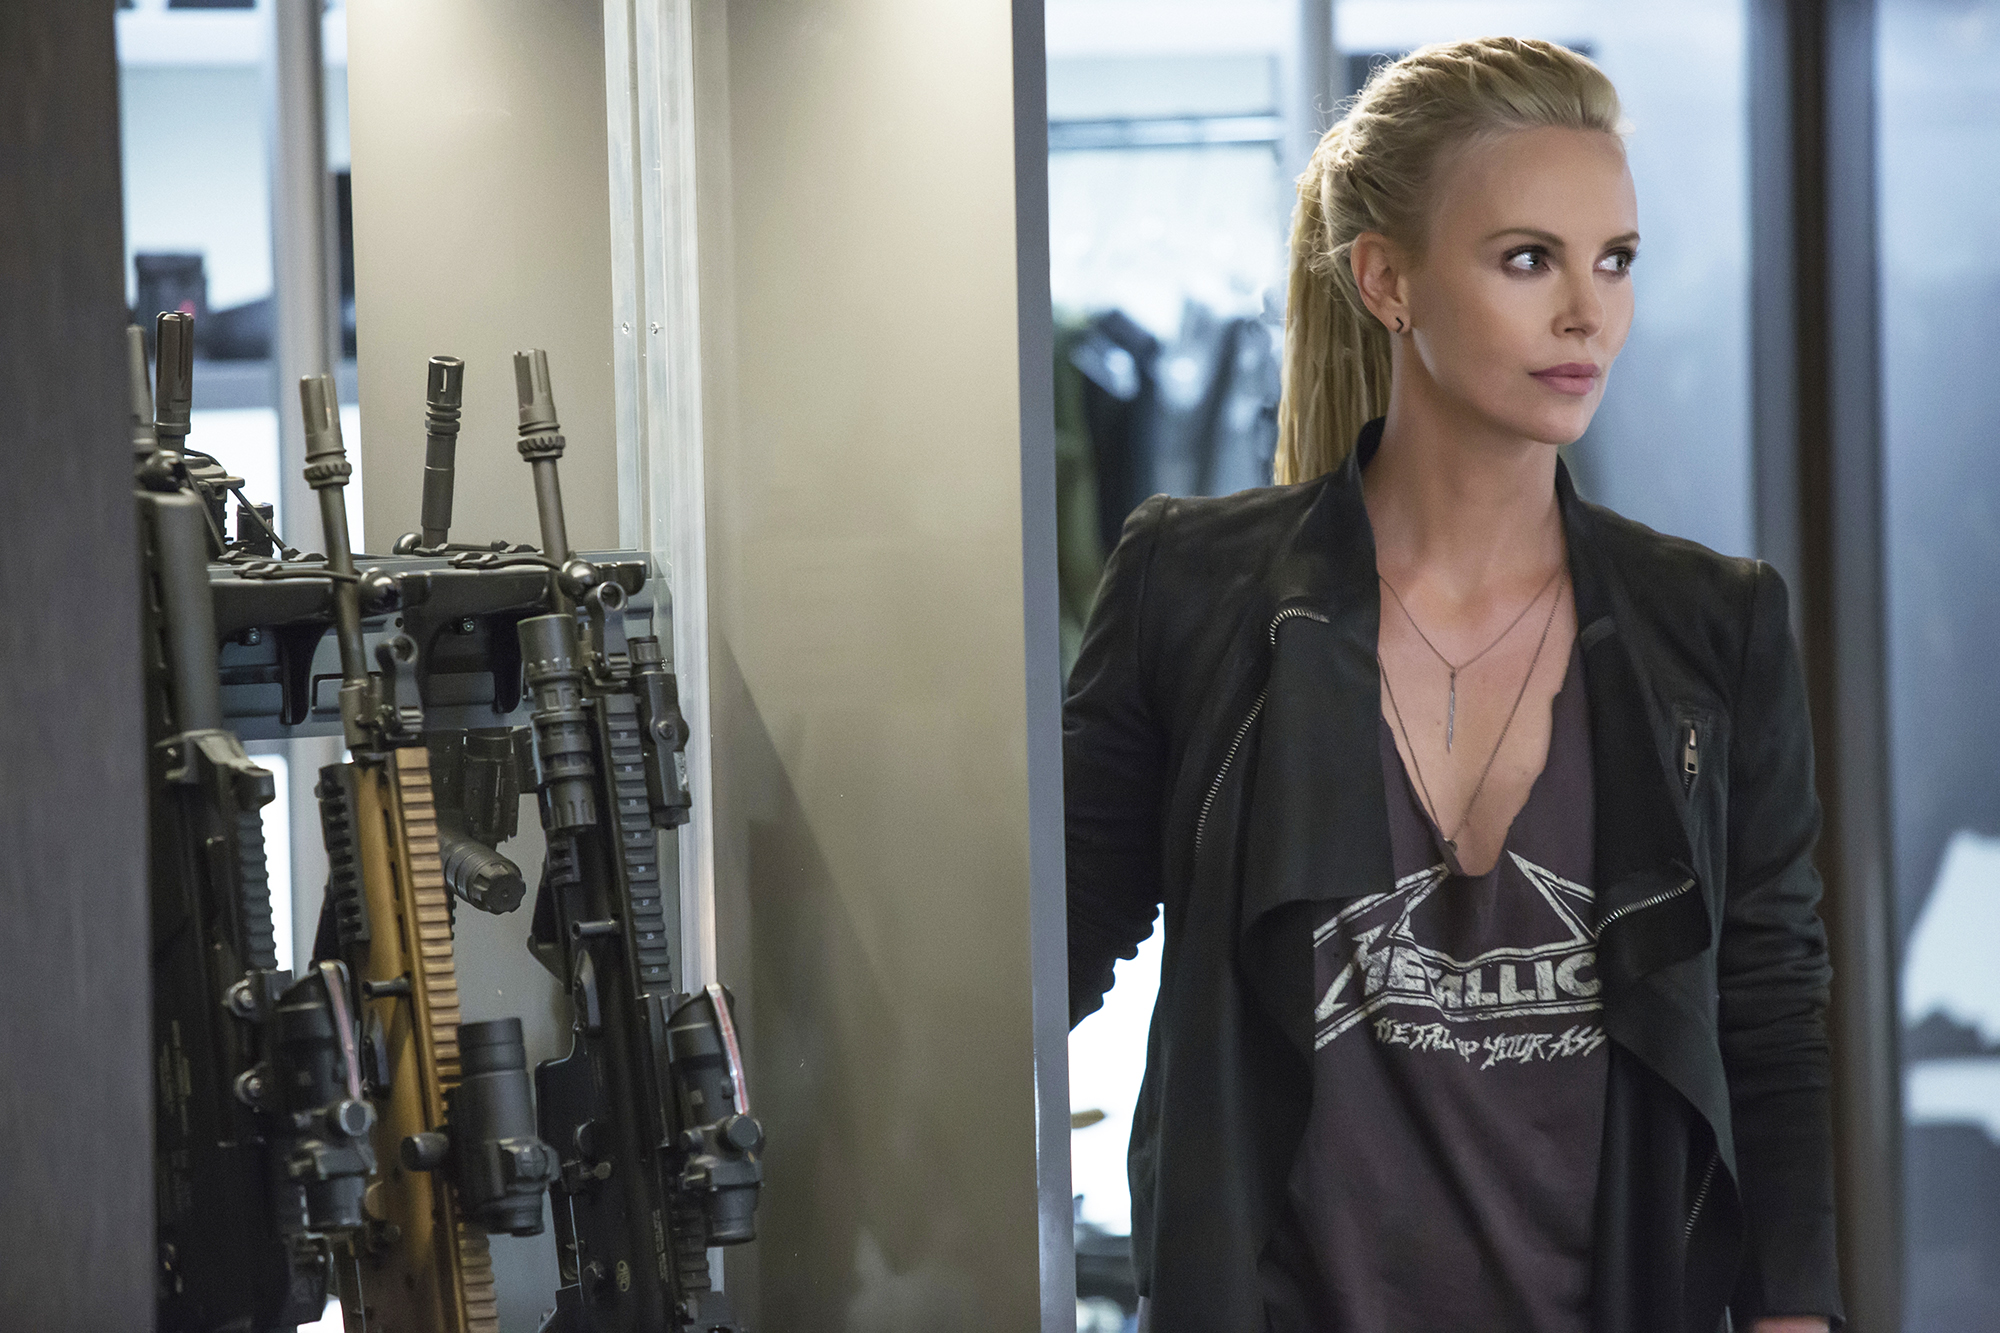 Charlize Theron in The Fate of the Furious.